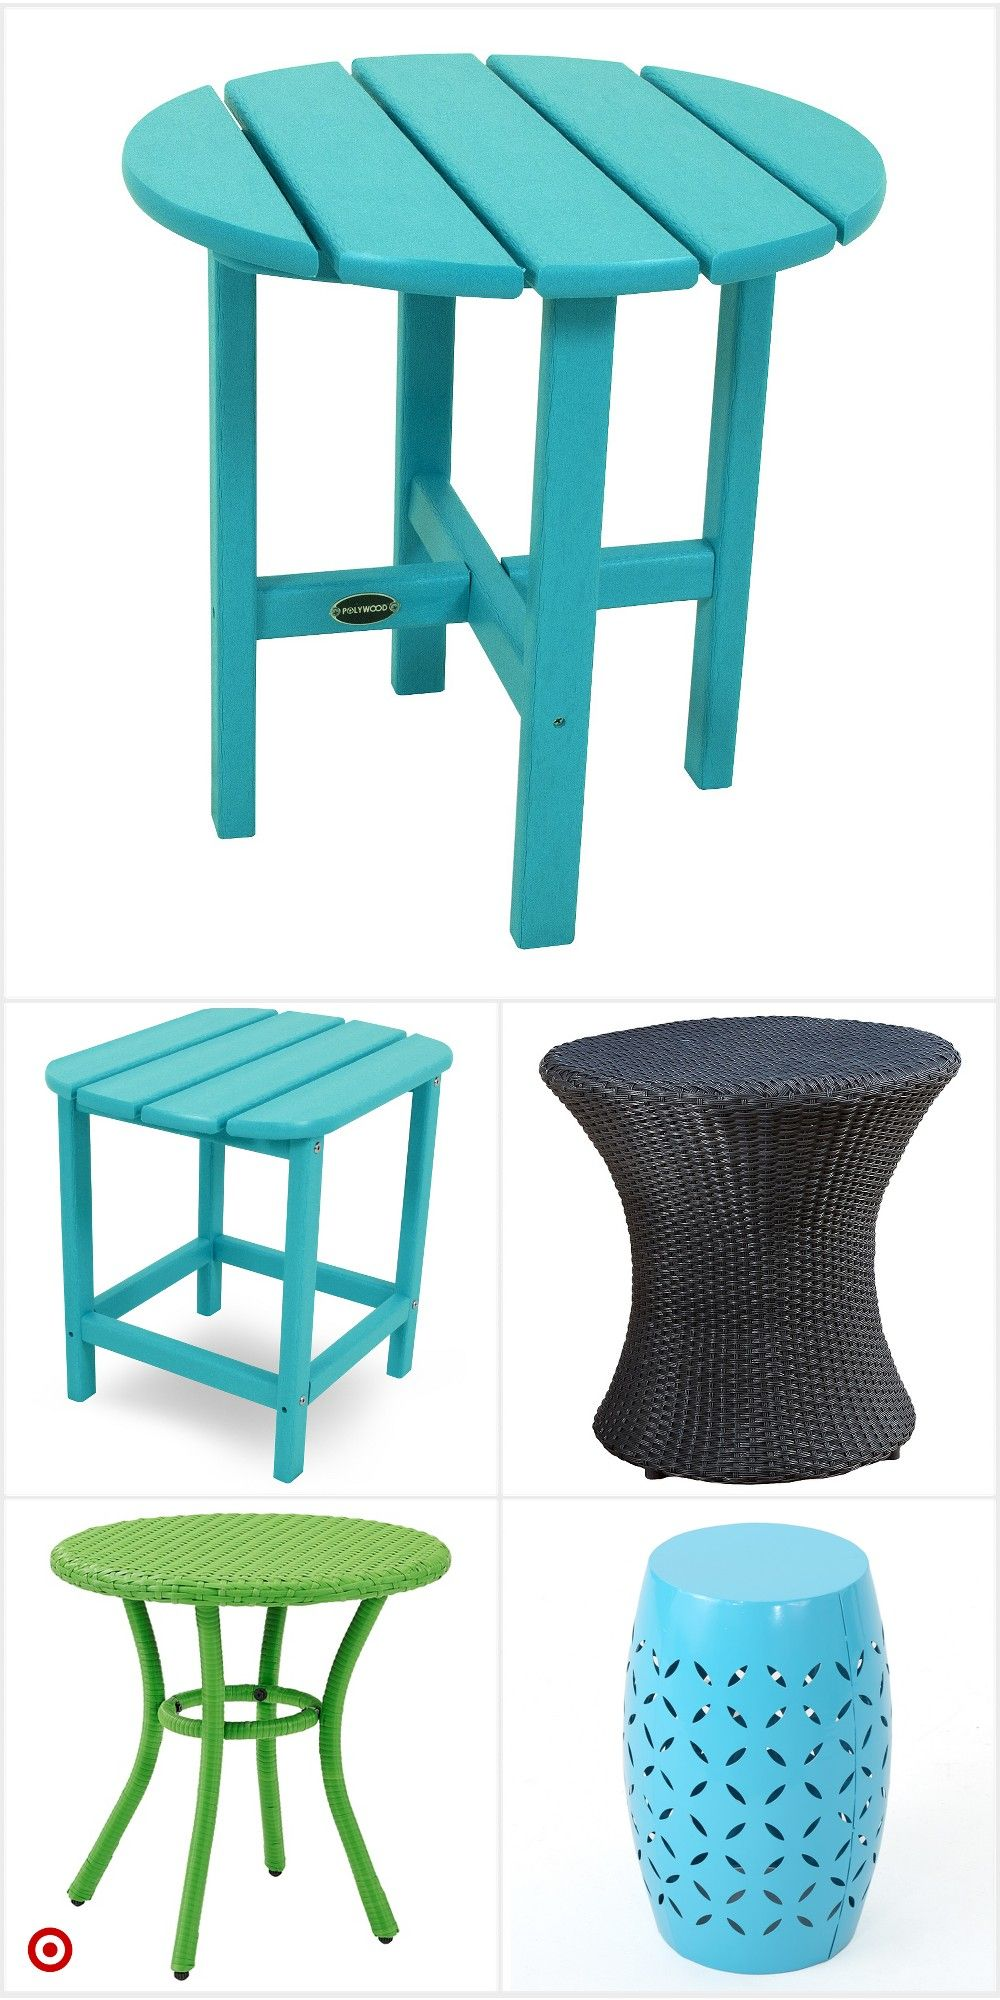 patio accent table on shop target for patio accent table you will love at great low prices free shipping on orders of 35 or fr in 2020 patio accent table patio accents patio dining table pinterest